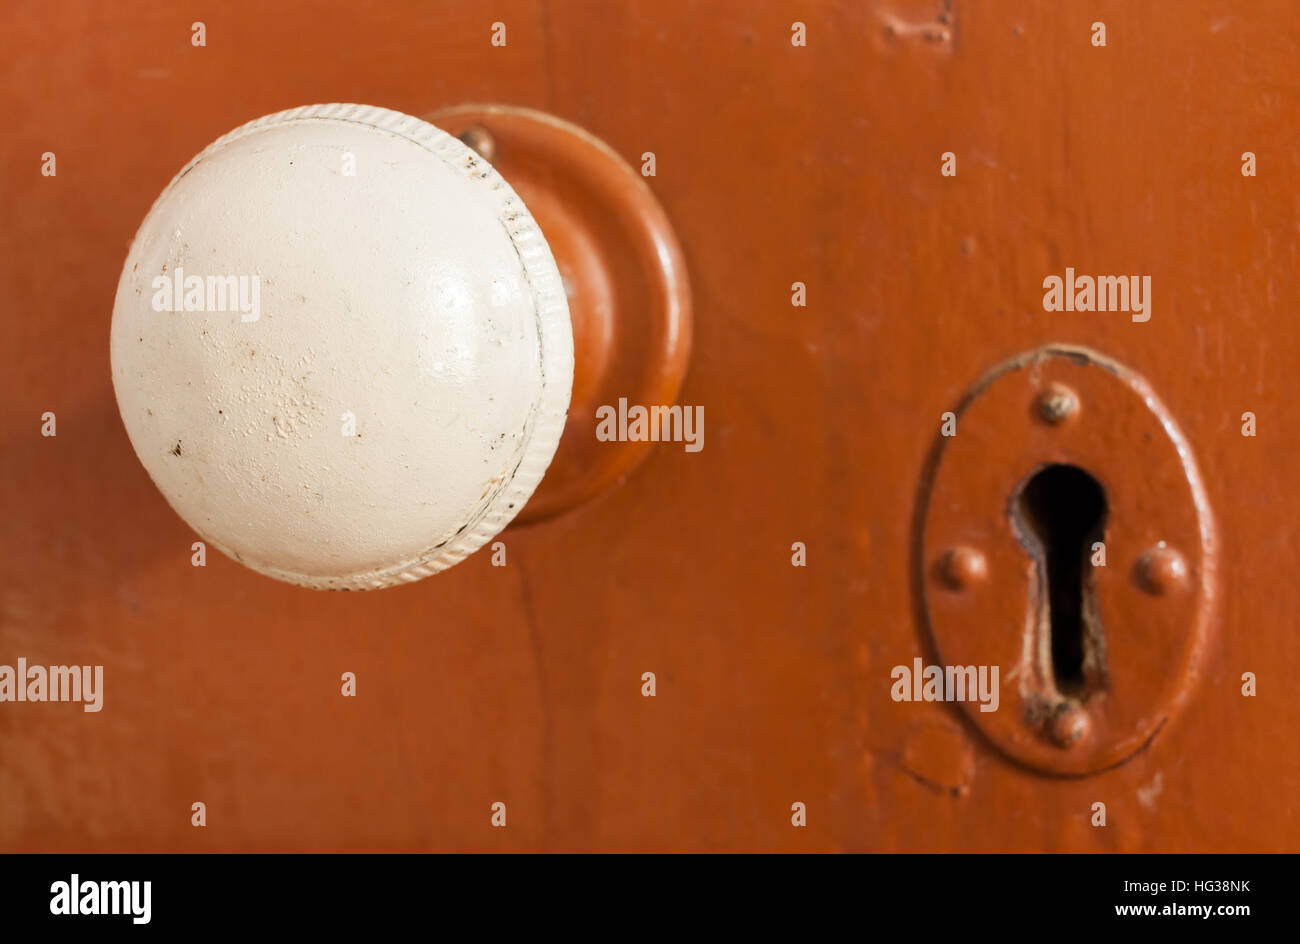 An old white door knob and keyhole on a brown wooden door. - Stock Image